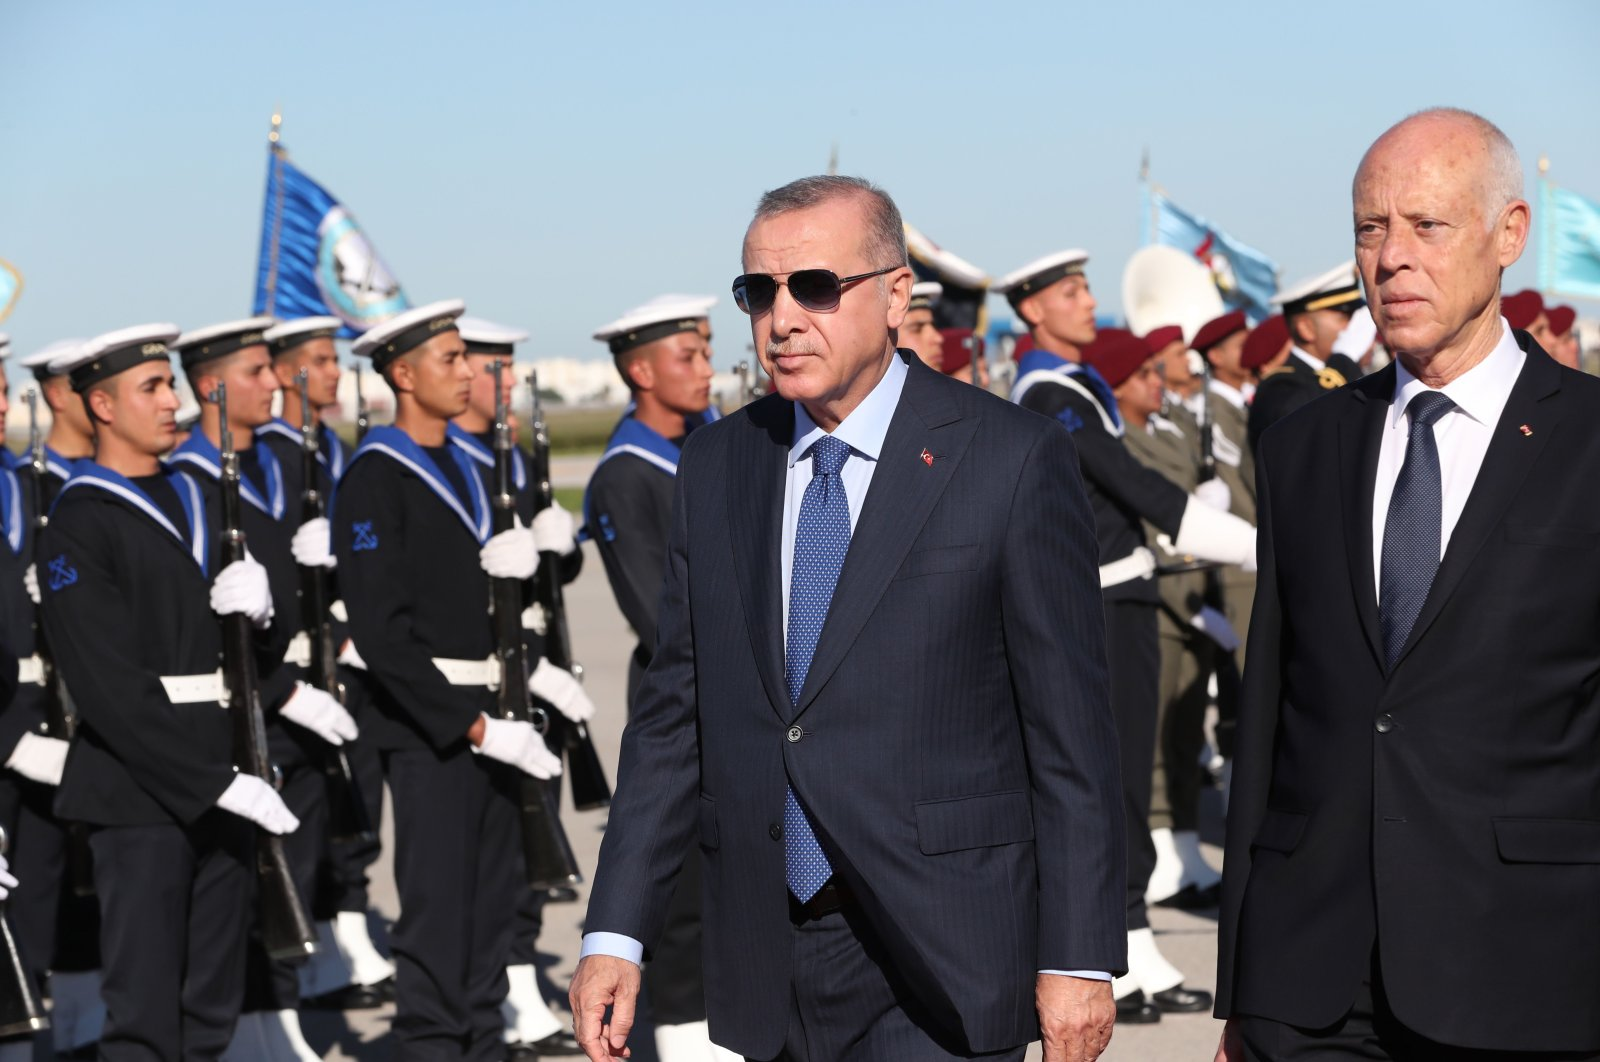 Turkish President Recep Tayyip Erdoğan (C) and his Tunisian counterpart Kais Saied (R) reviewing an honor guard during a welcoming ceremony at the airport in Tunis, Tunisia, on Dec. 25, 2019. (Photo courtesy of the Turkish Presidential Press Service/AFP)